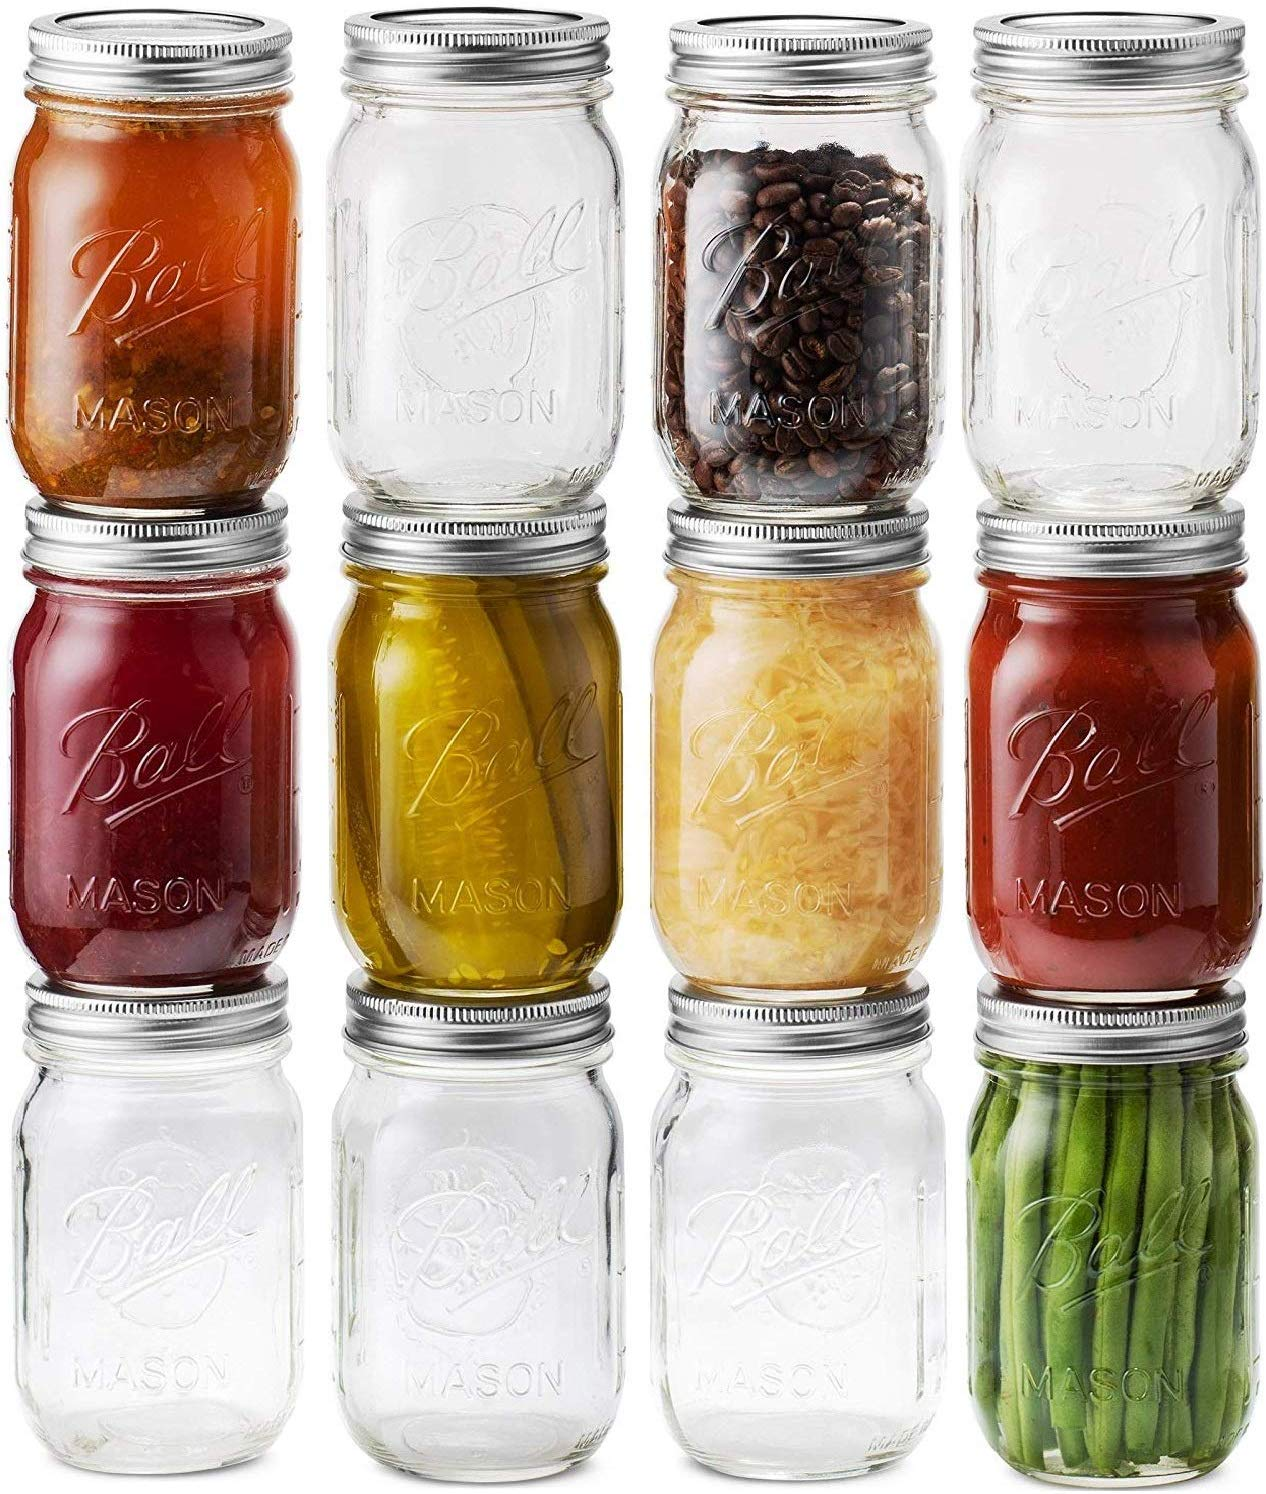 ball canning jars for salad dressing